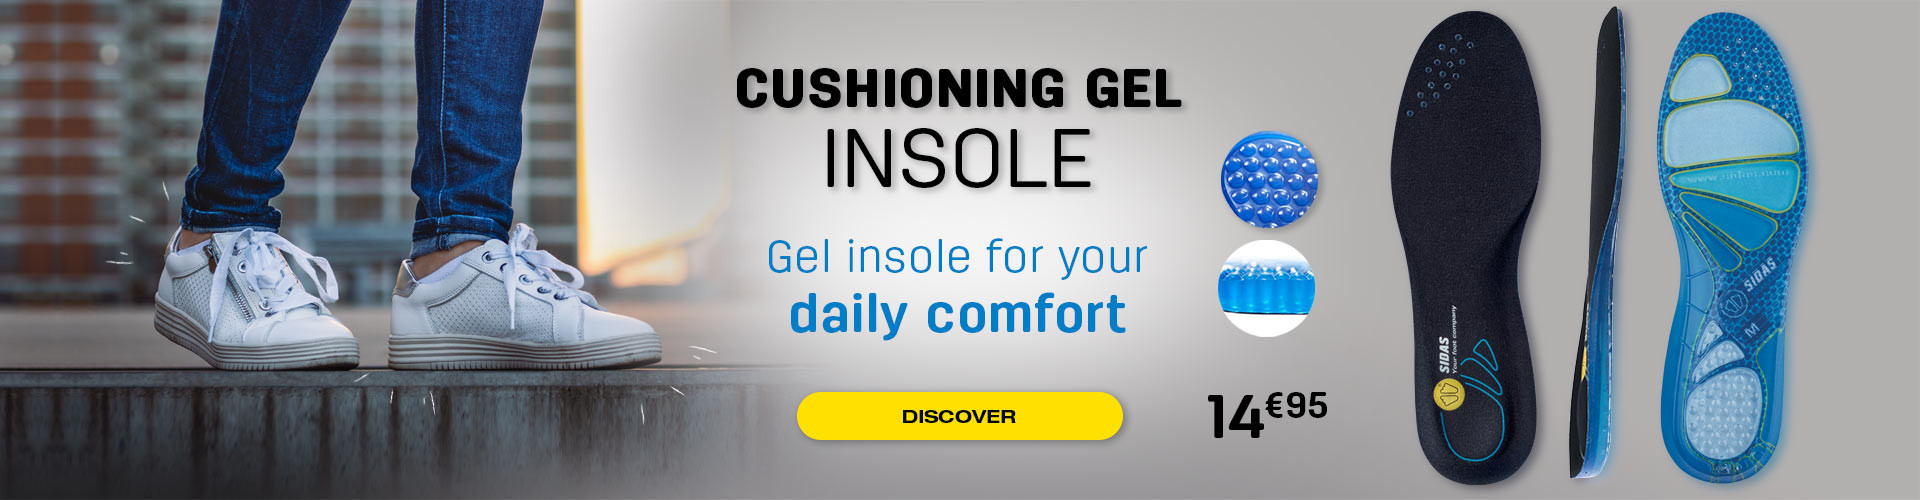 Increase your daily comfort with our Cushioning gel insoles!